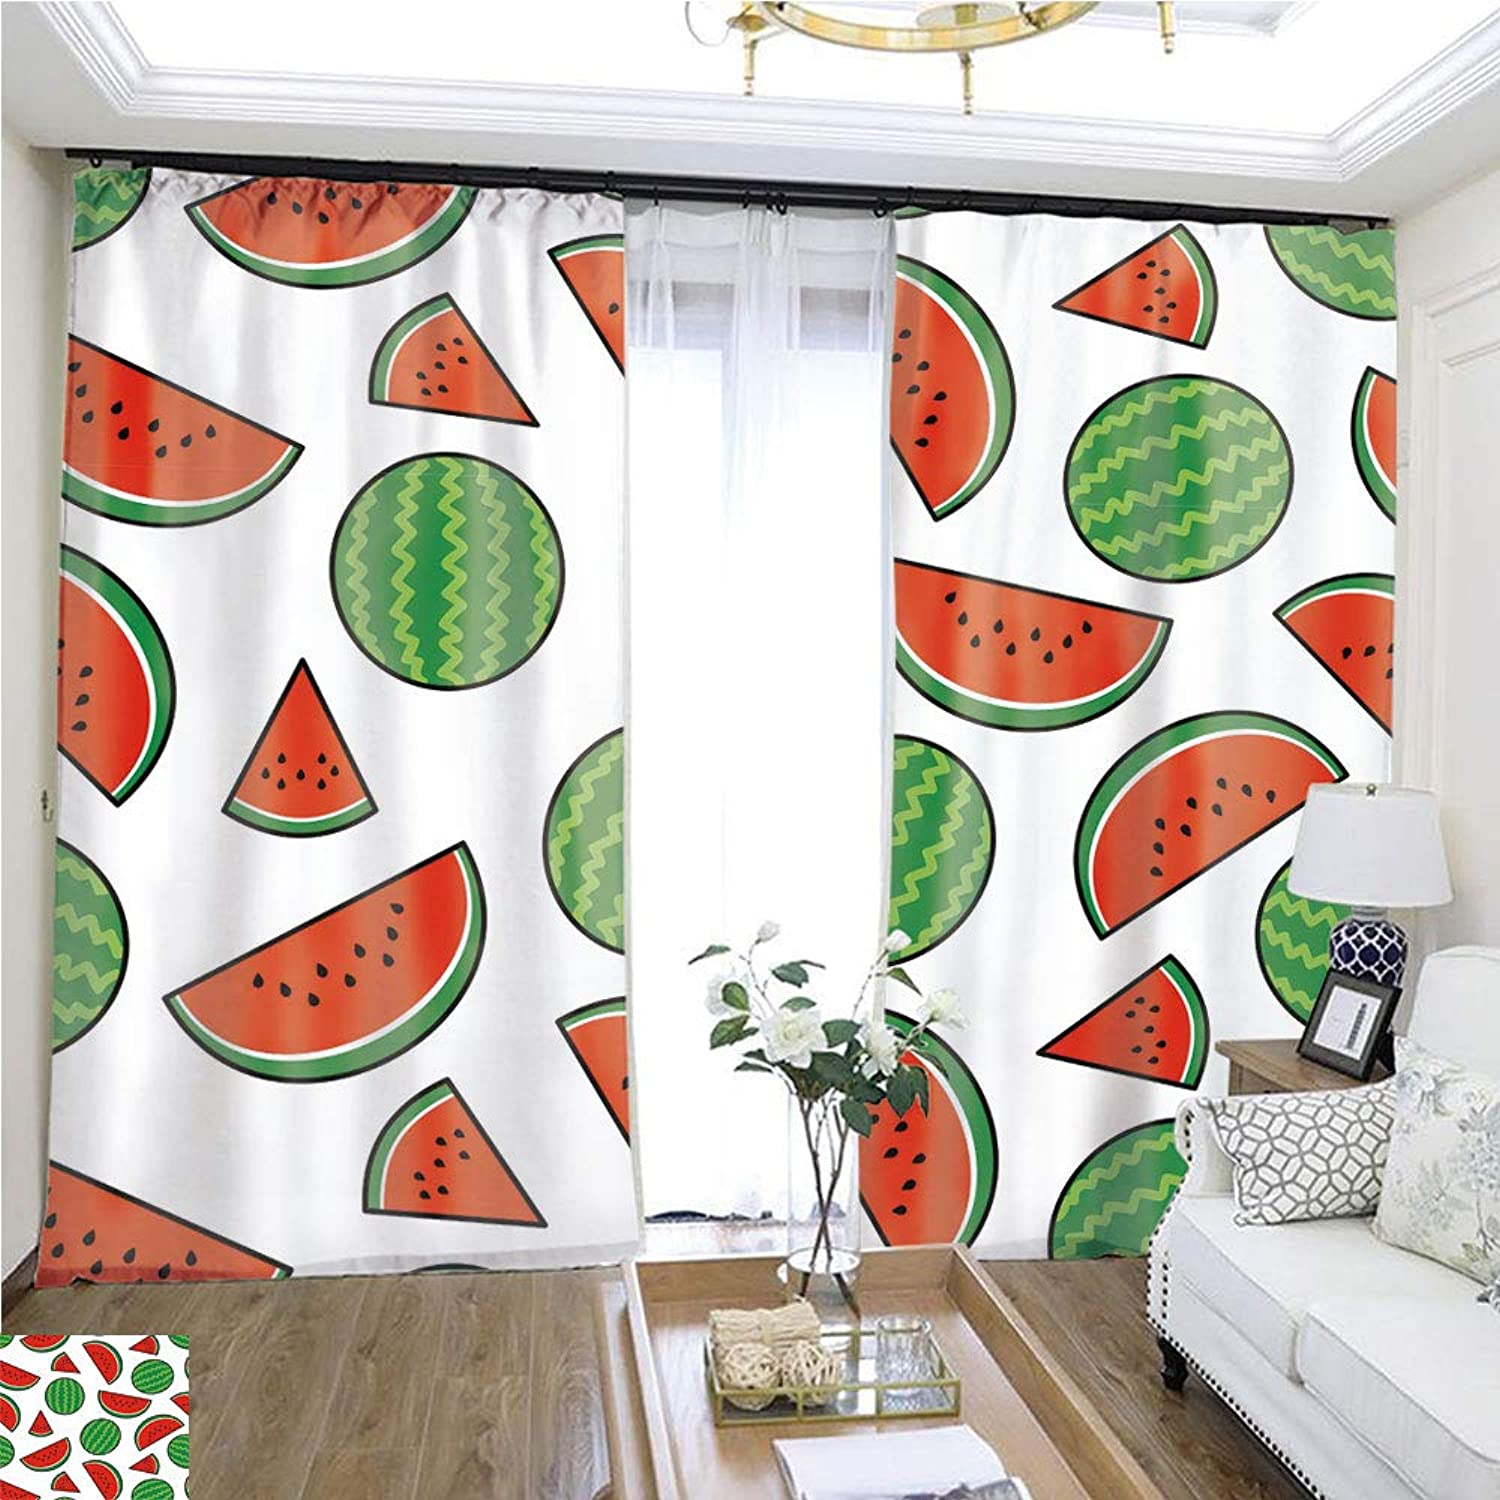 Air Port Screen Cute Watermelon Random on White Background W96 x L300 Provide Heat Highprecision Curtains for bedrooms Living Rooms Kitchens etc.